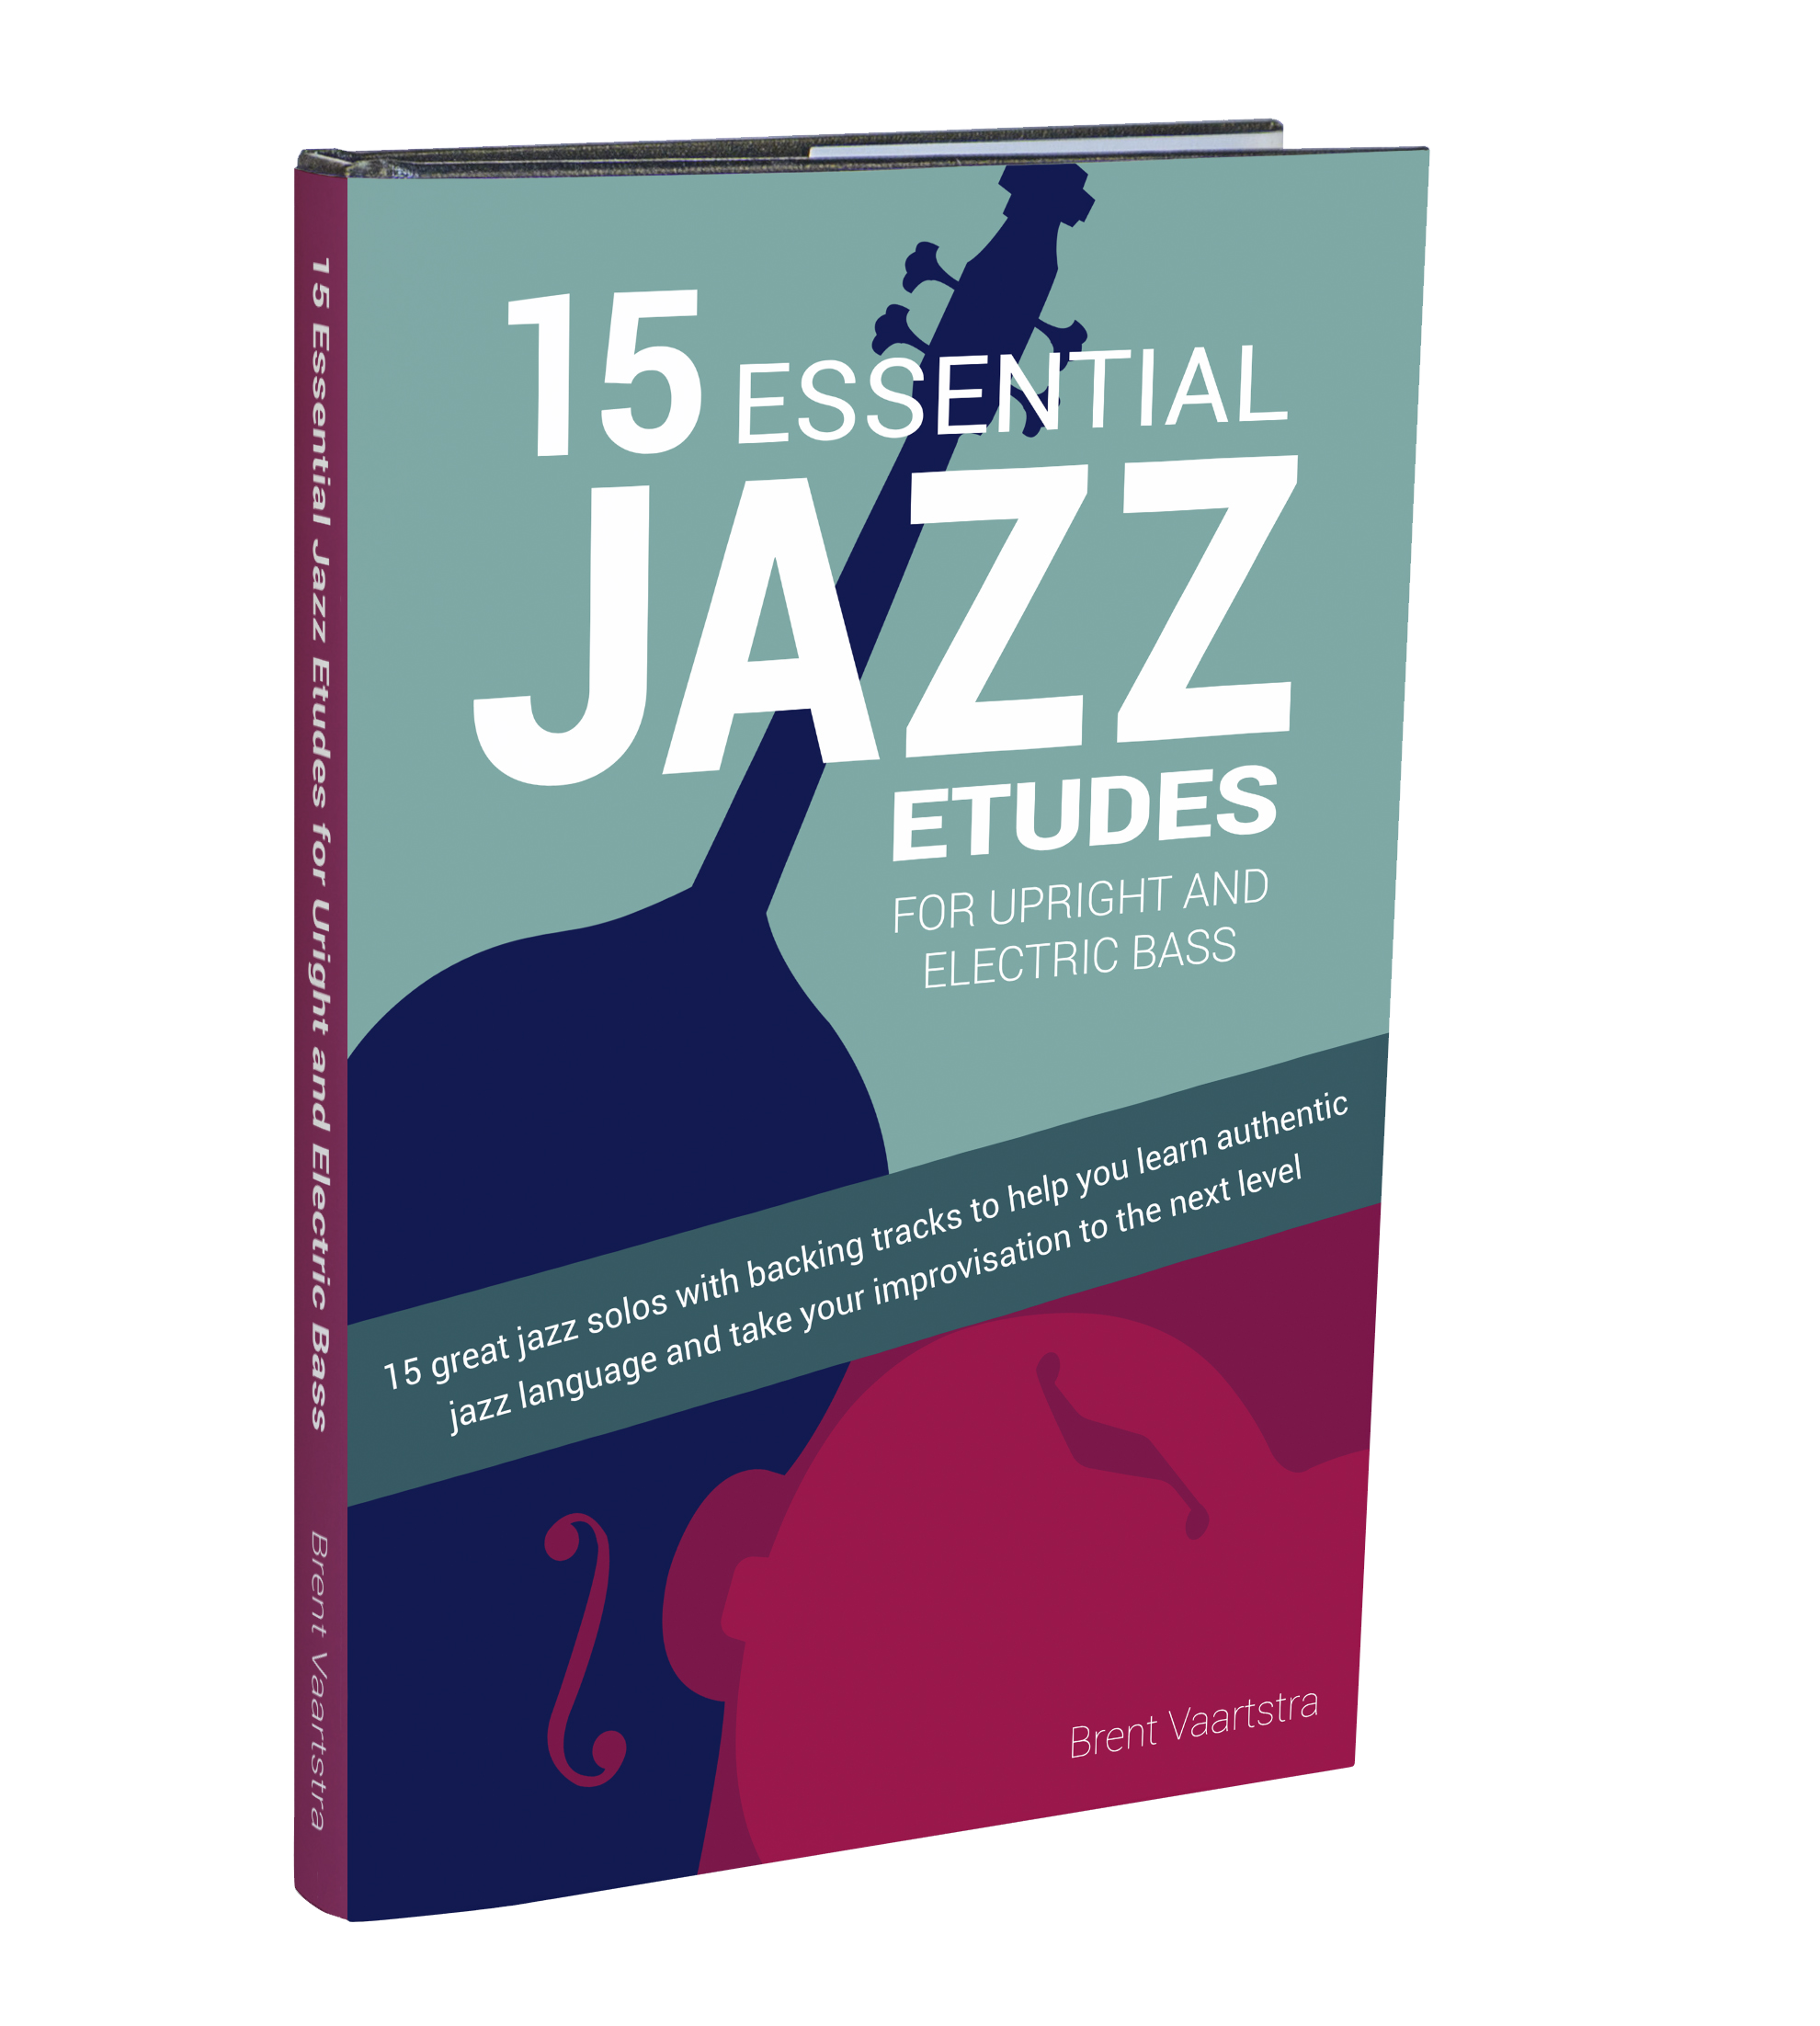 Learn to play upright bass free